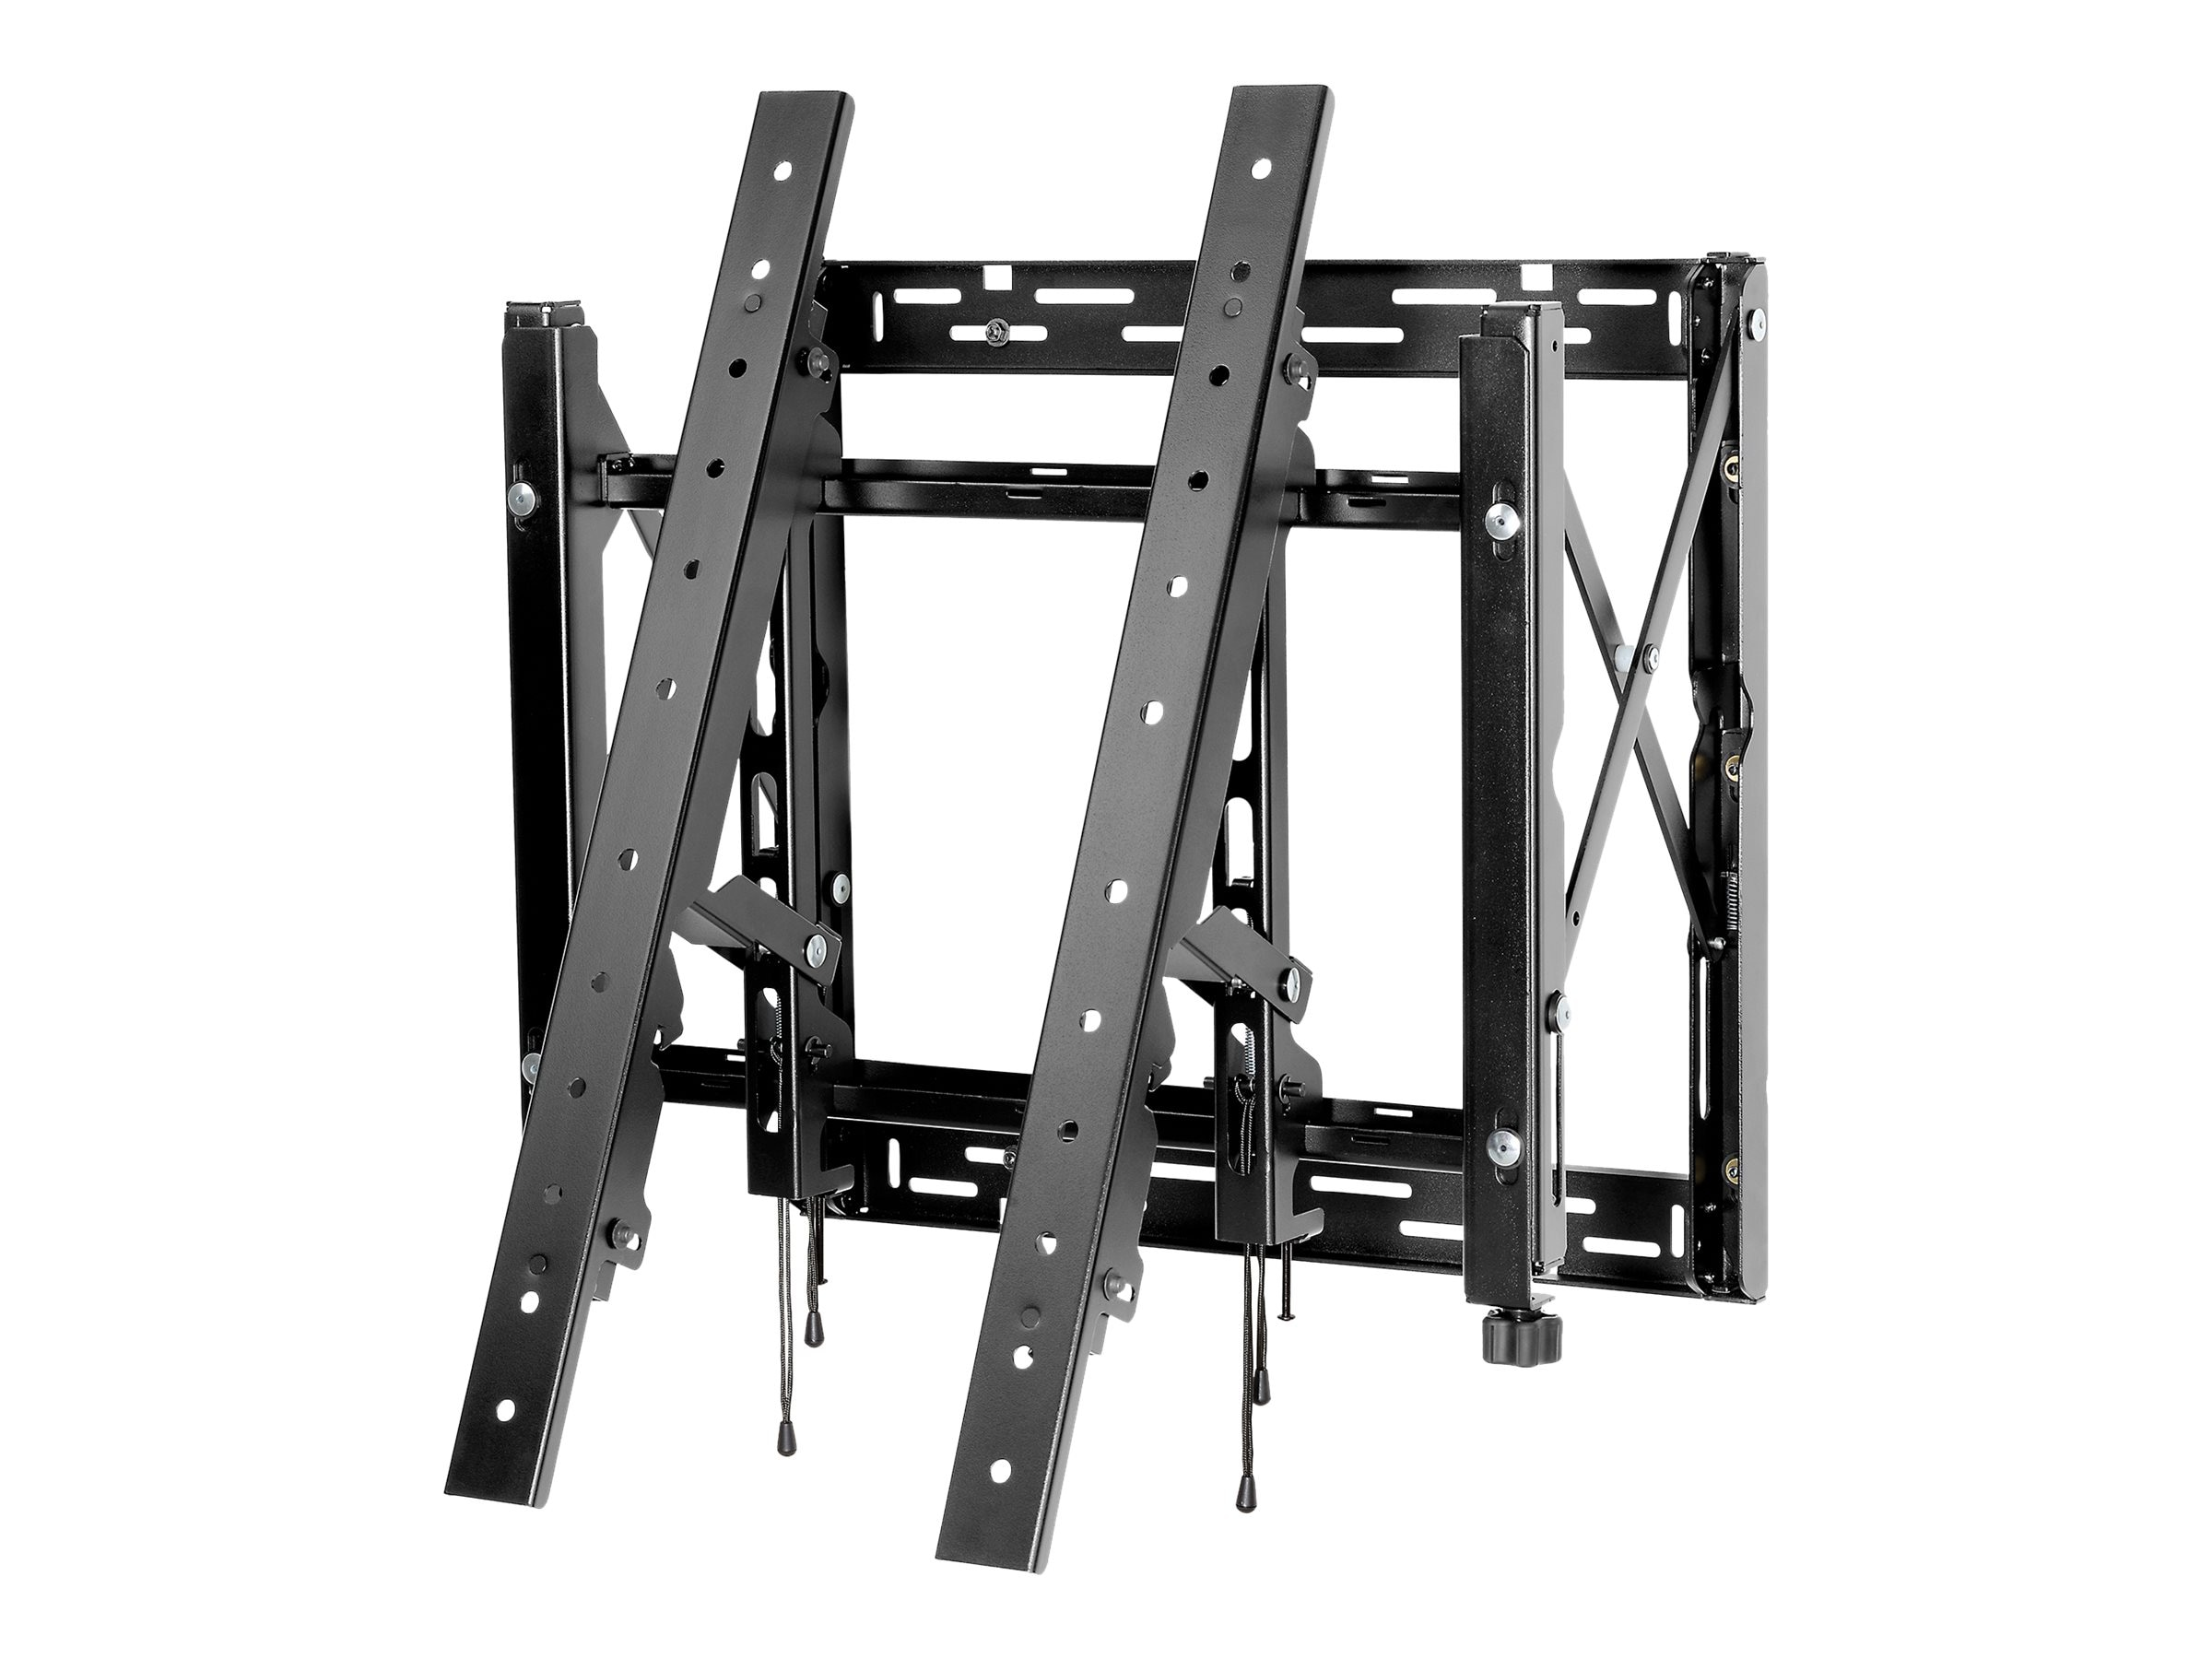 Peerless Portrait SmartMount Full-Service Video Wall Mount for 42-65 Display